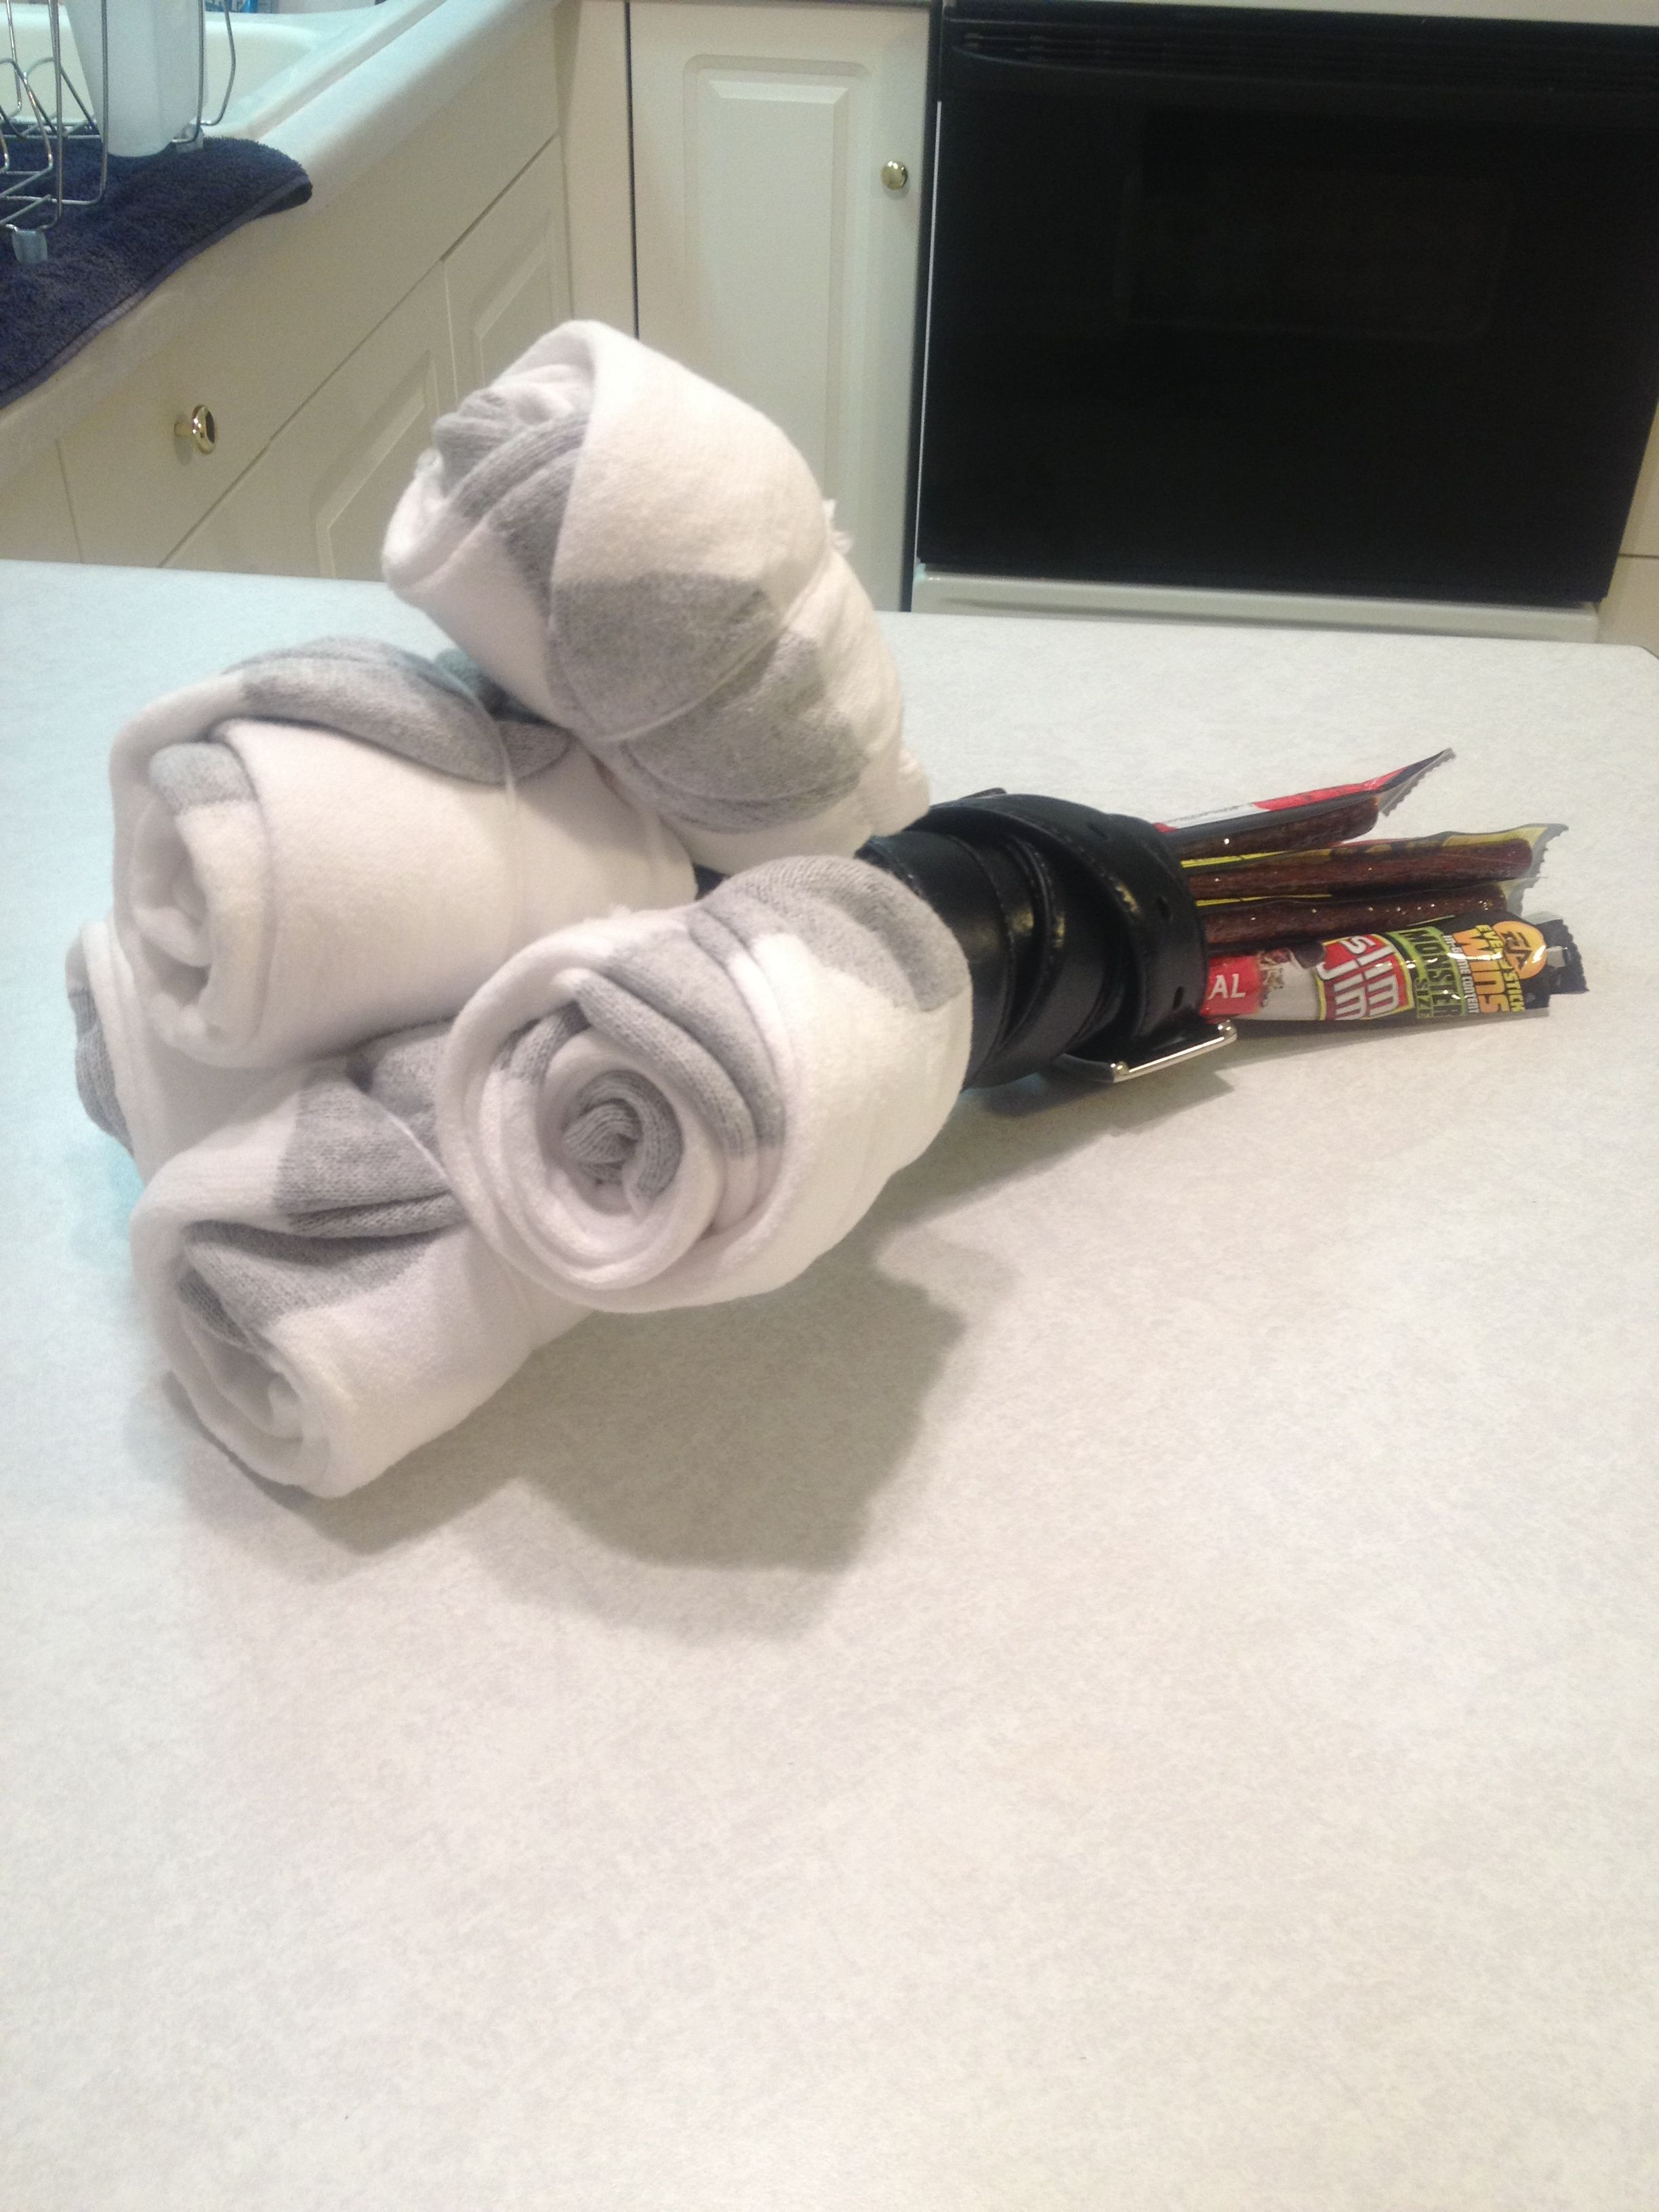 Manly Bouquet Socks Slim Jim S Belt Flowers For Him